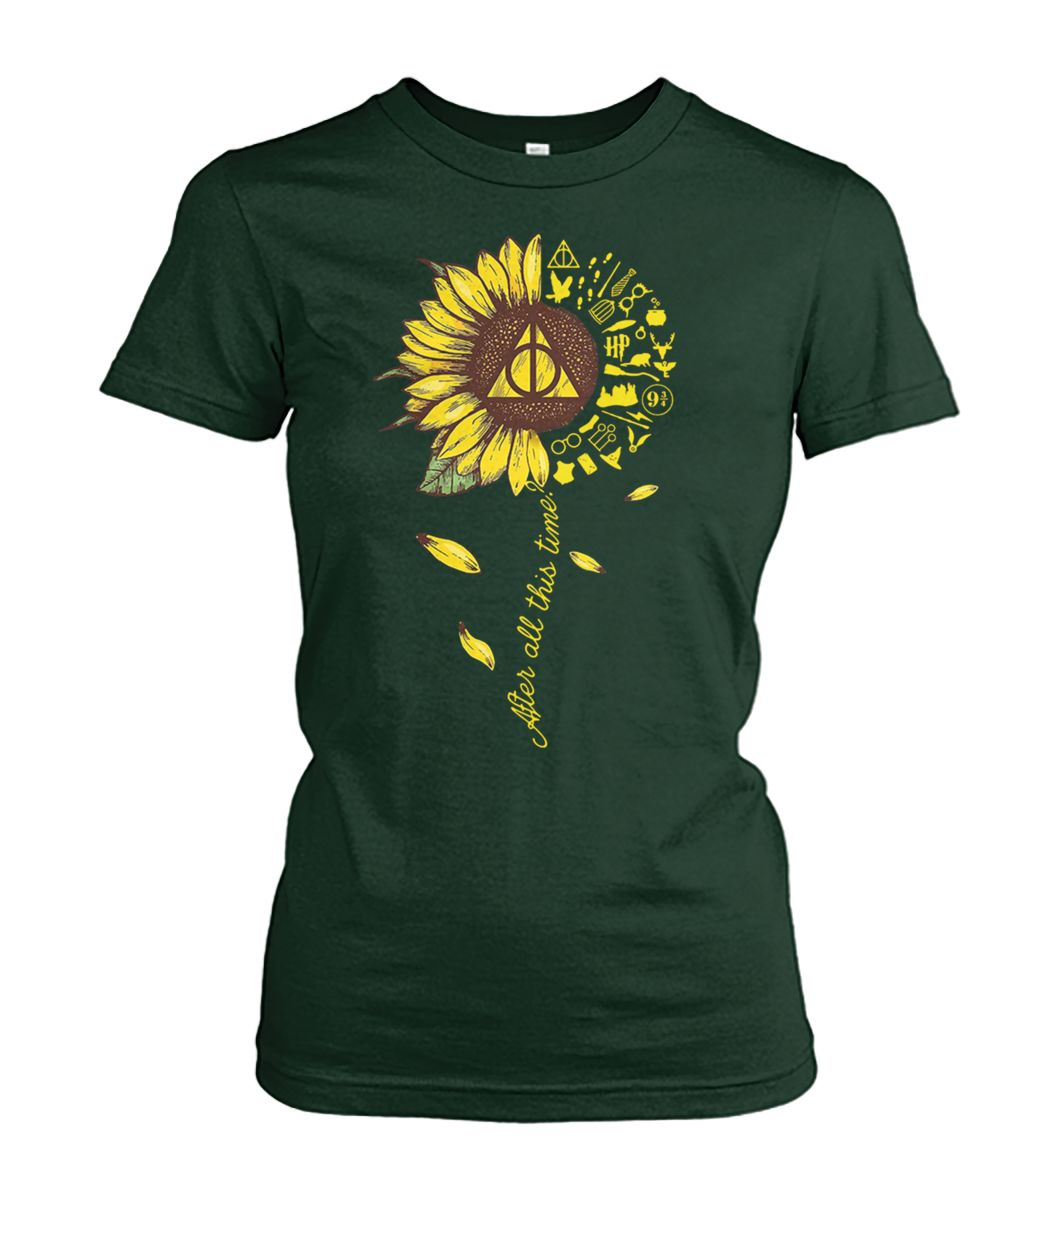 [Hot version] Harry potter after all this time sunflower shirt